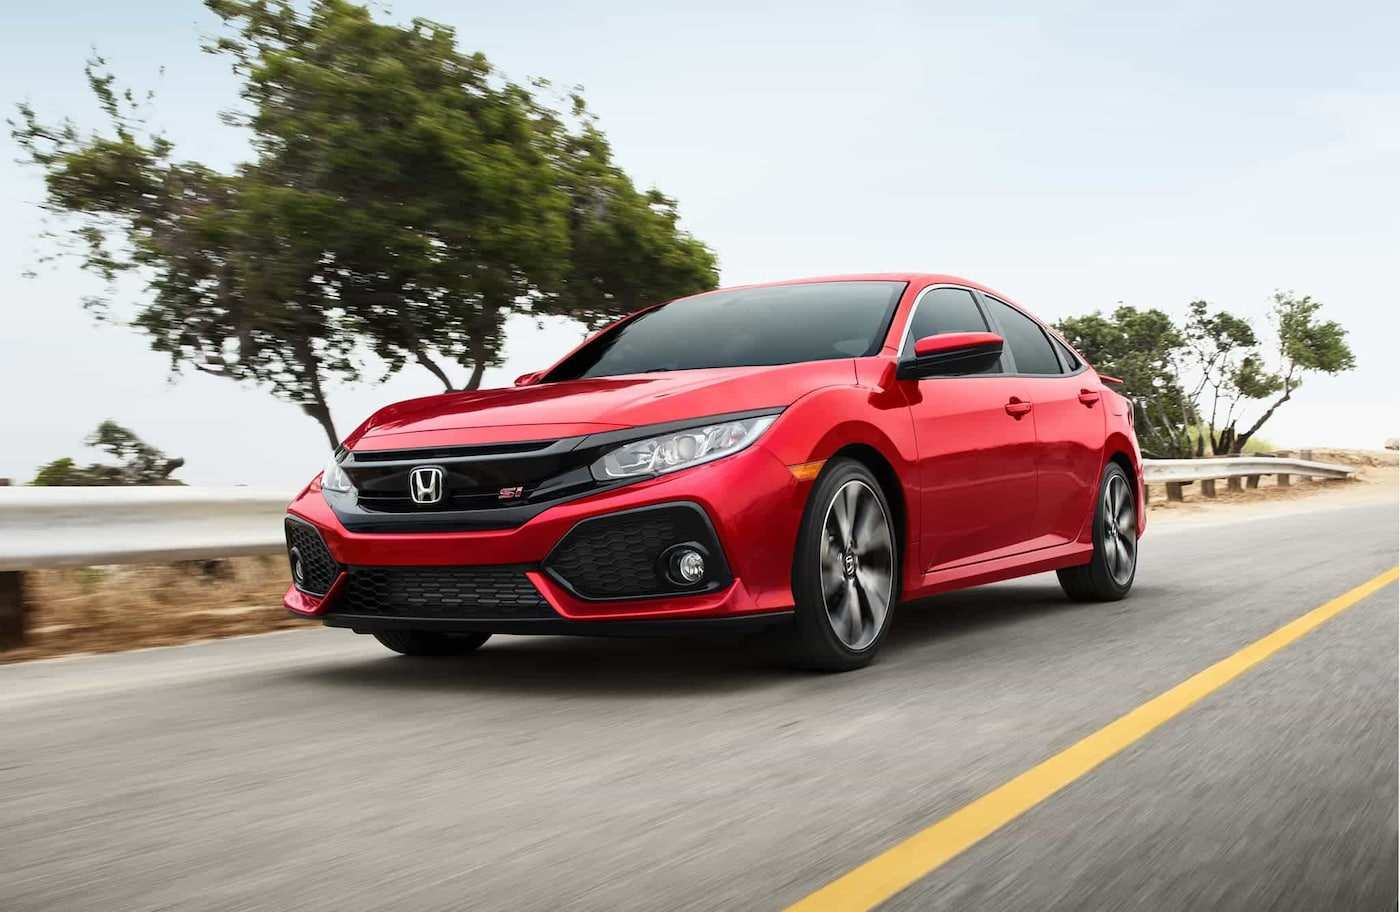 39 The Best 2019 Honda Civic Si Sedan Reviews